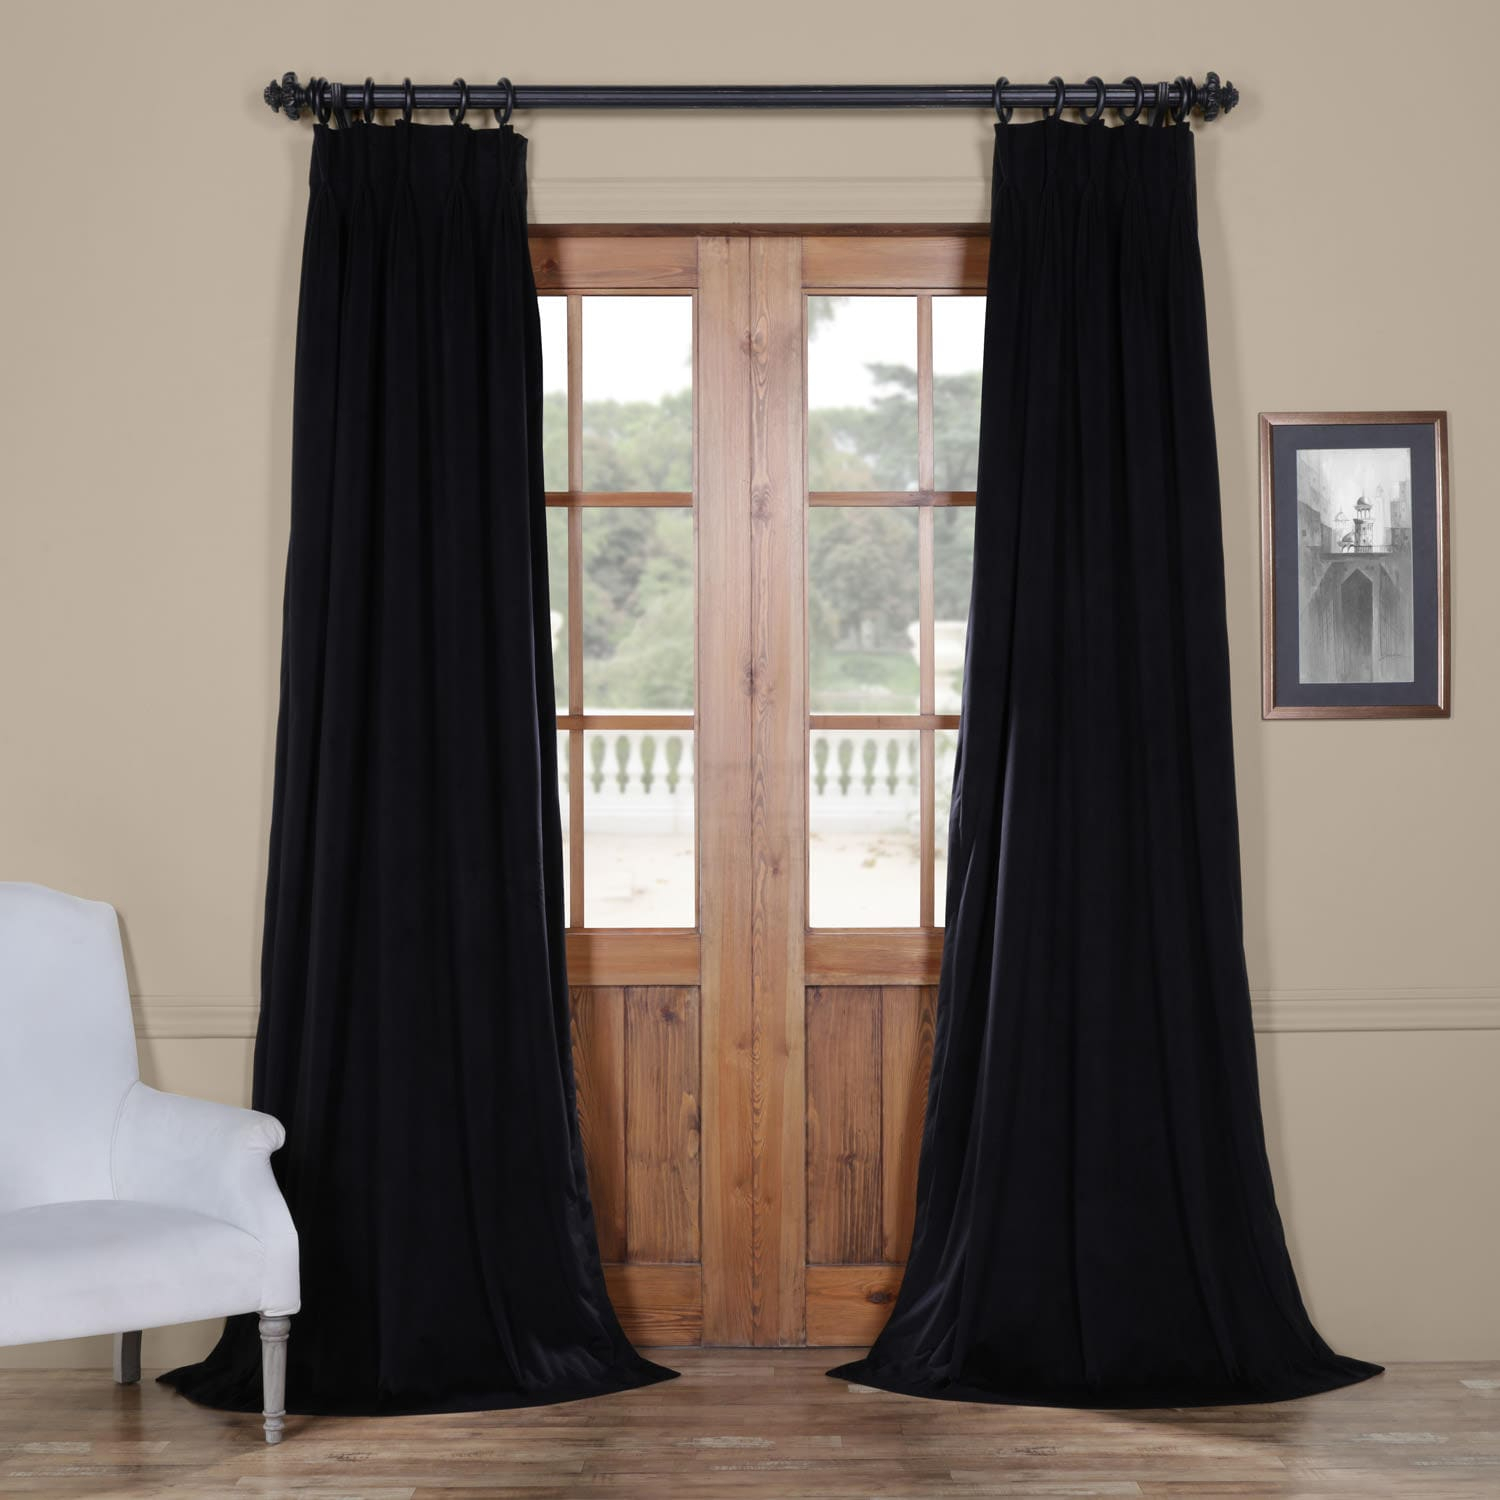 Signature Warm Black Pleated Blackout Velvet Curtain With Regard To Signature Blackout Velvet Curtains (View 15 of 20)